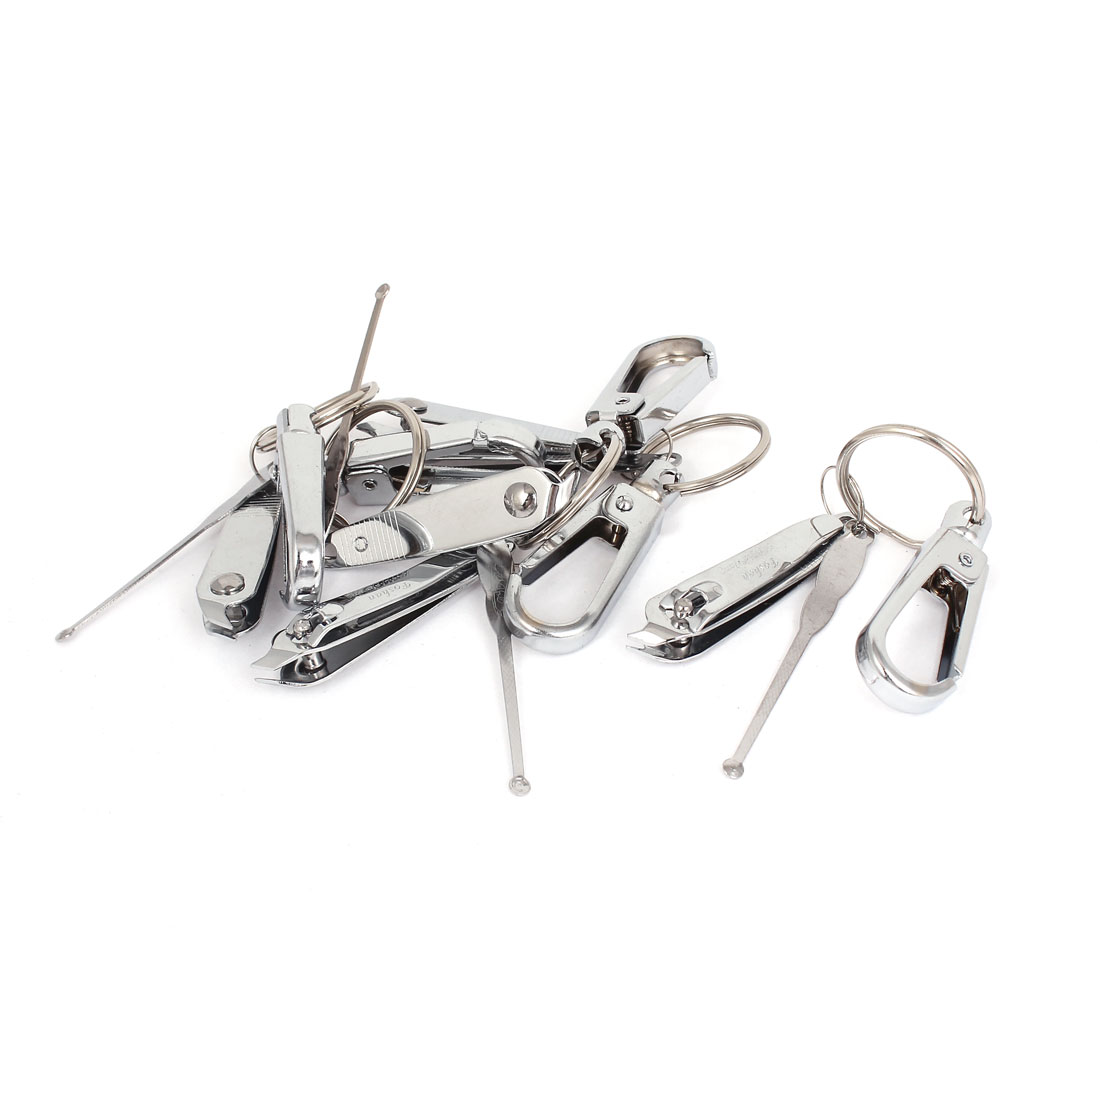 5pcs Metal Spring Loaded Earpick Nail Clipper Key Ring Keychain Holder